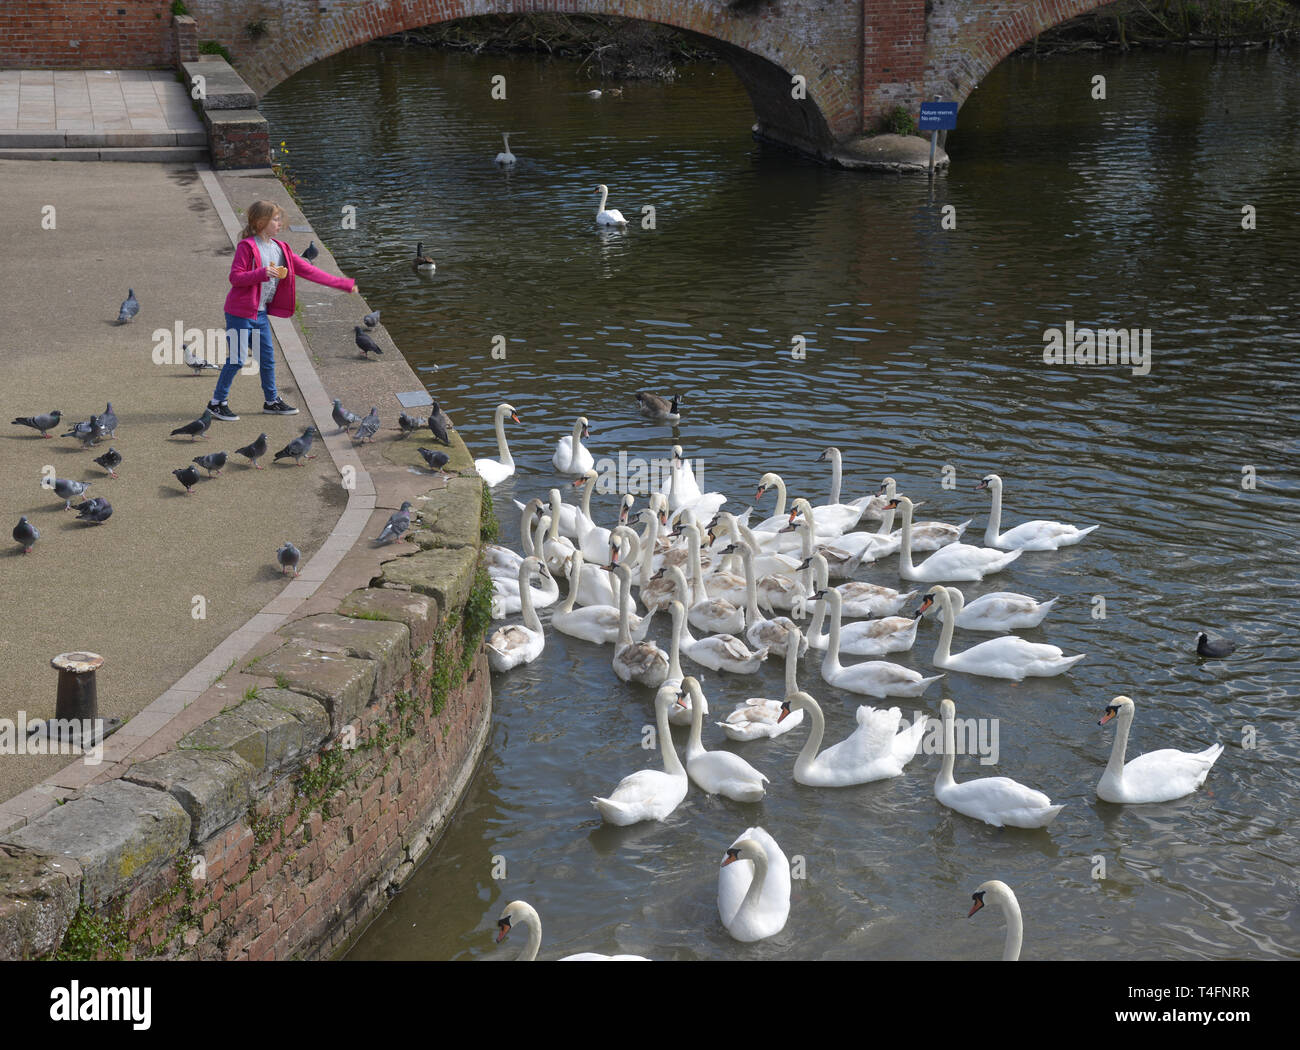 Feeding swans from the bank of the River Avon in Stratford upon Avon, Warwickshire Stock Photo